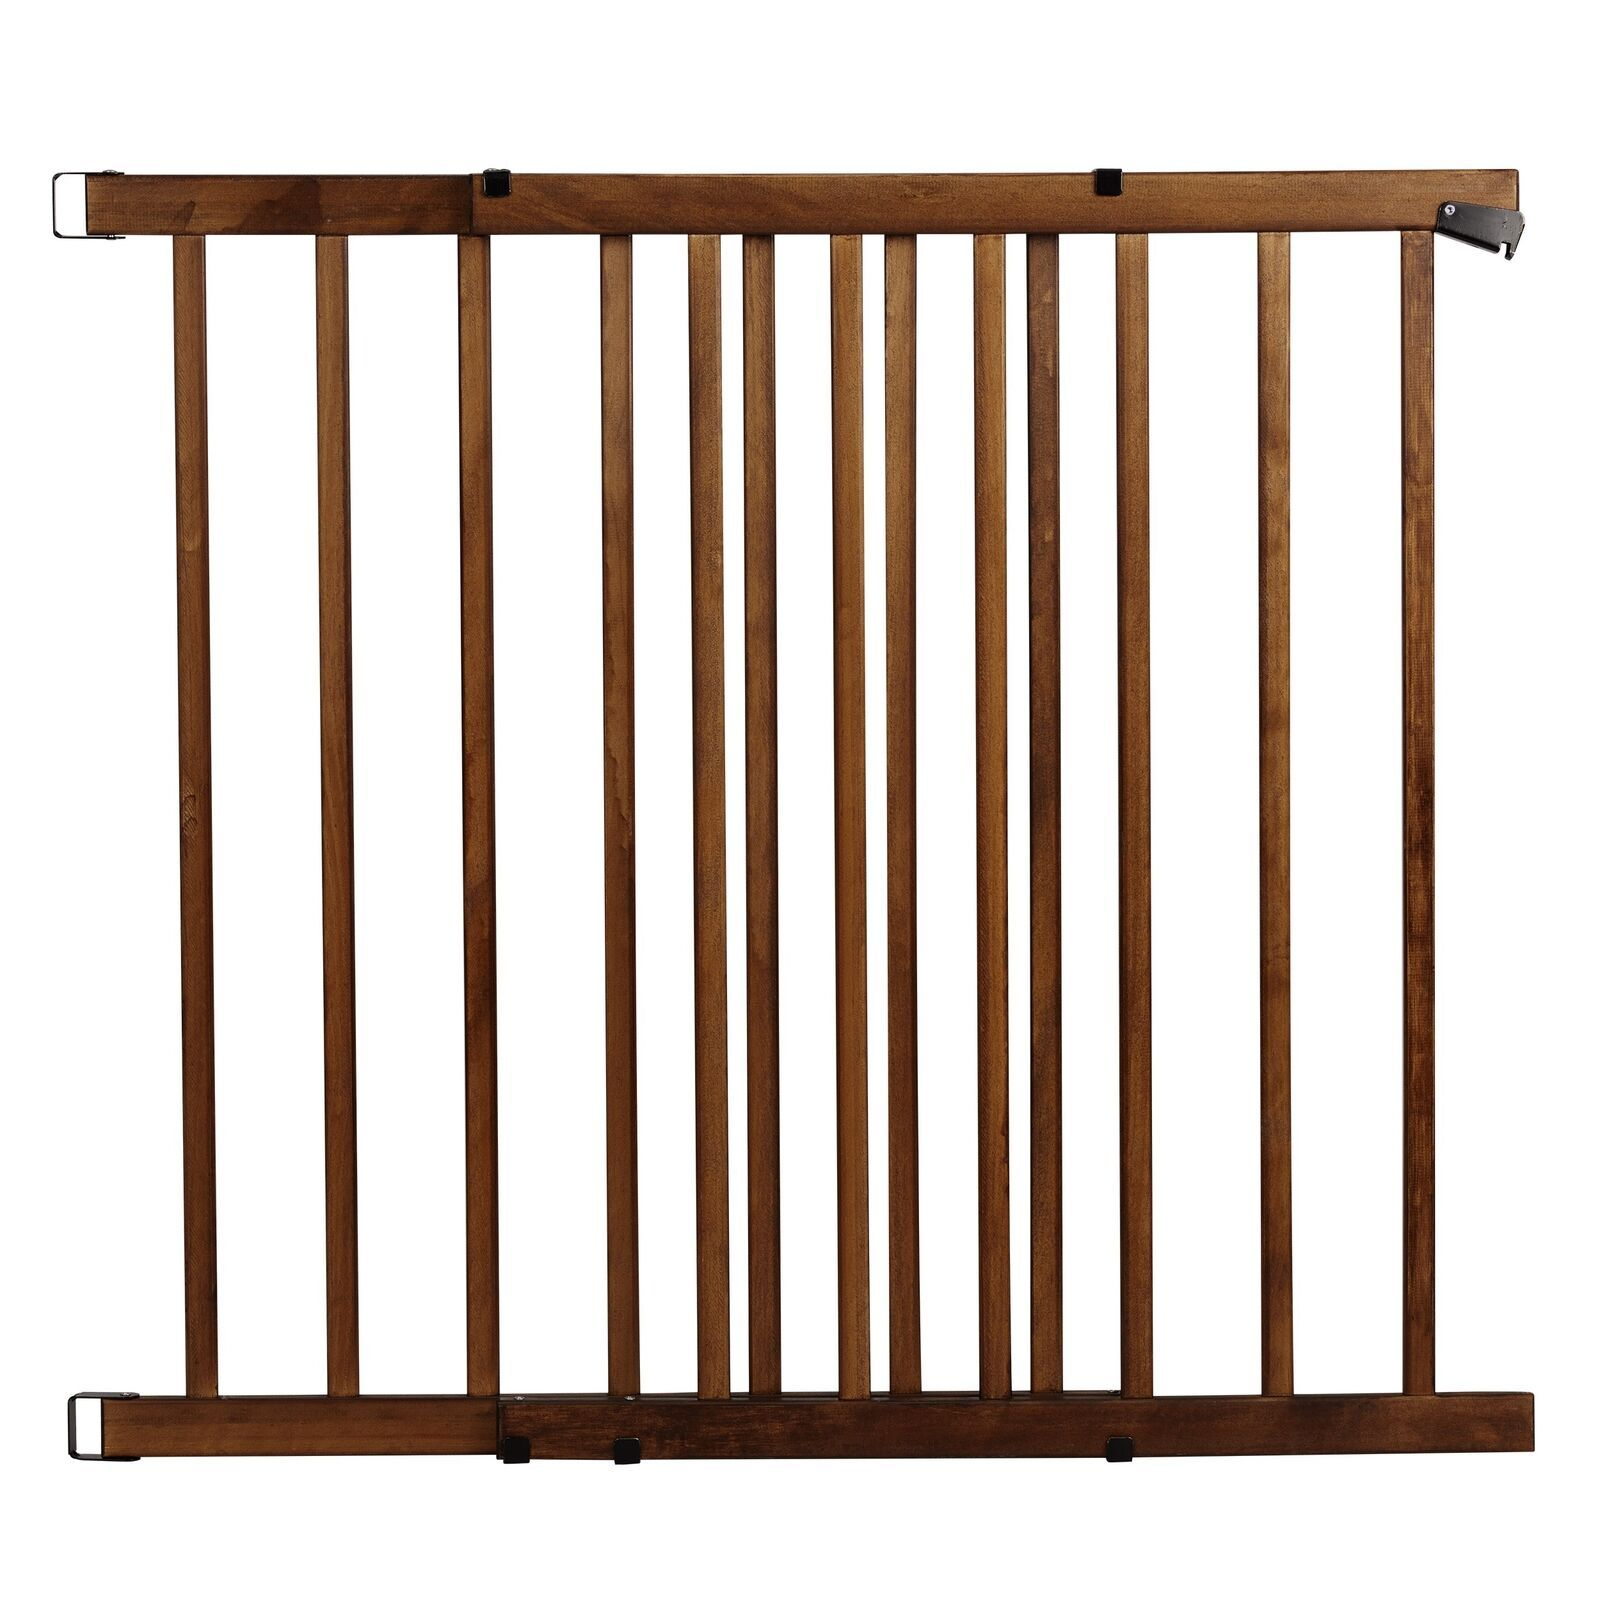 Evenflo top of the stair extra tall hardware mount gate